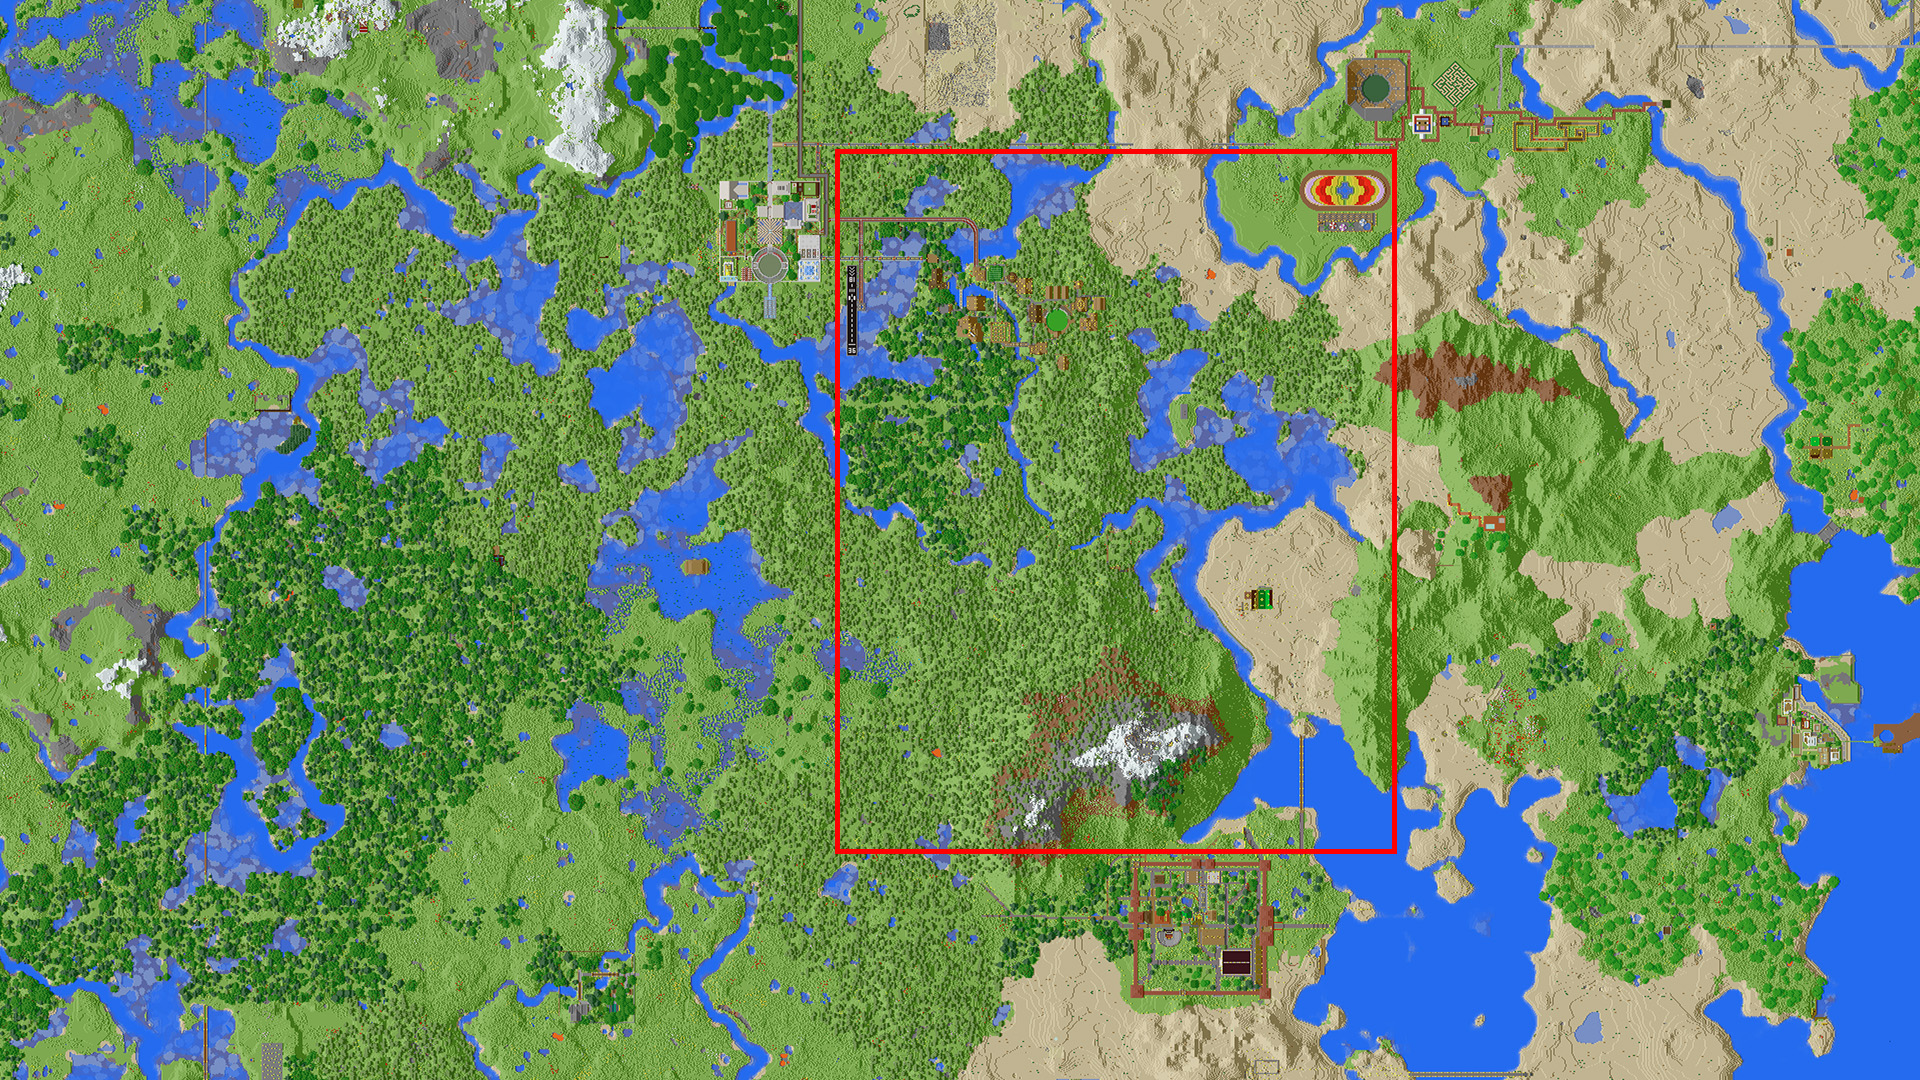 Section of the map for export is outlined in red.